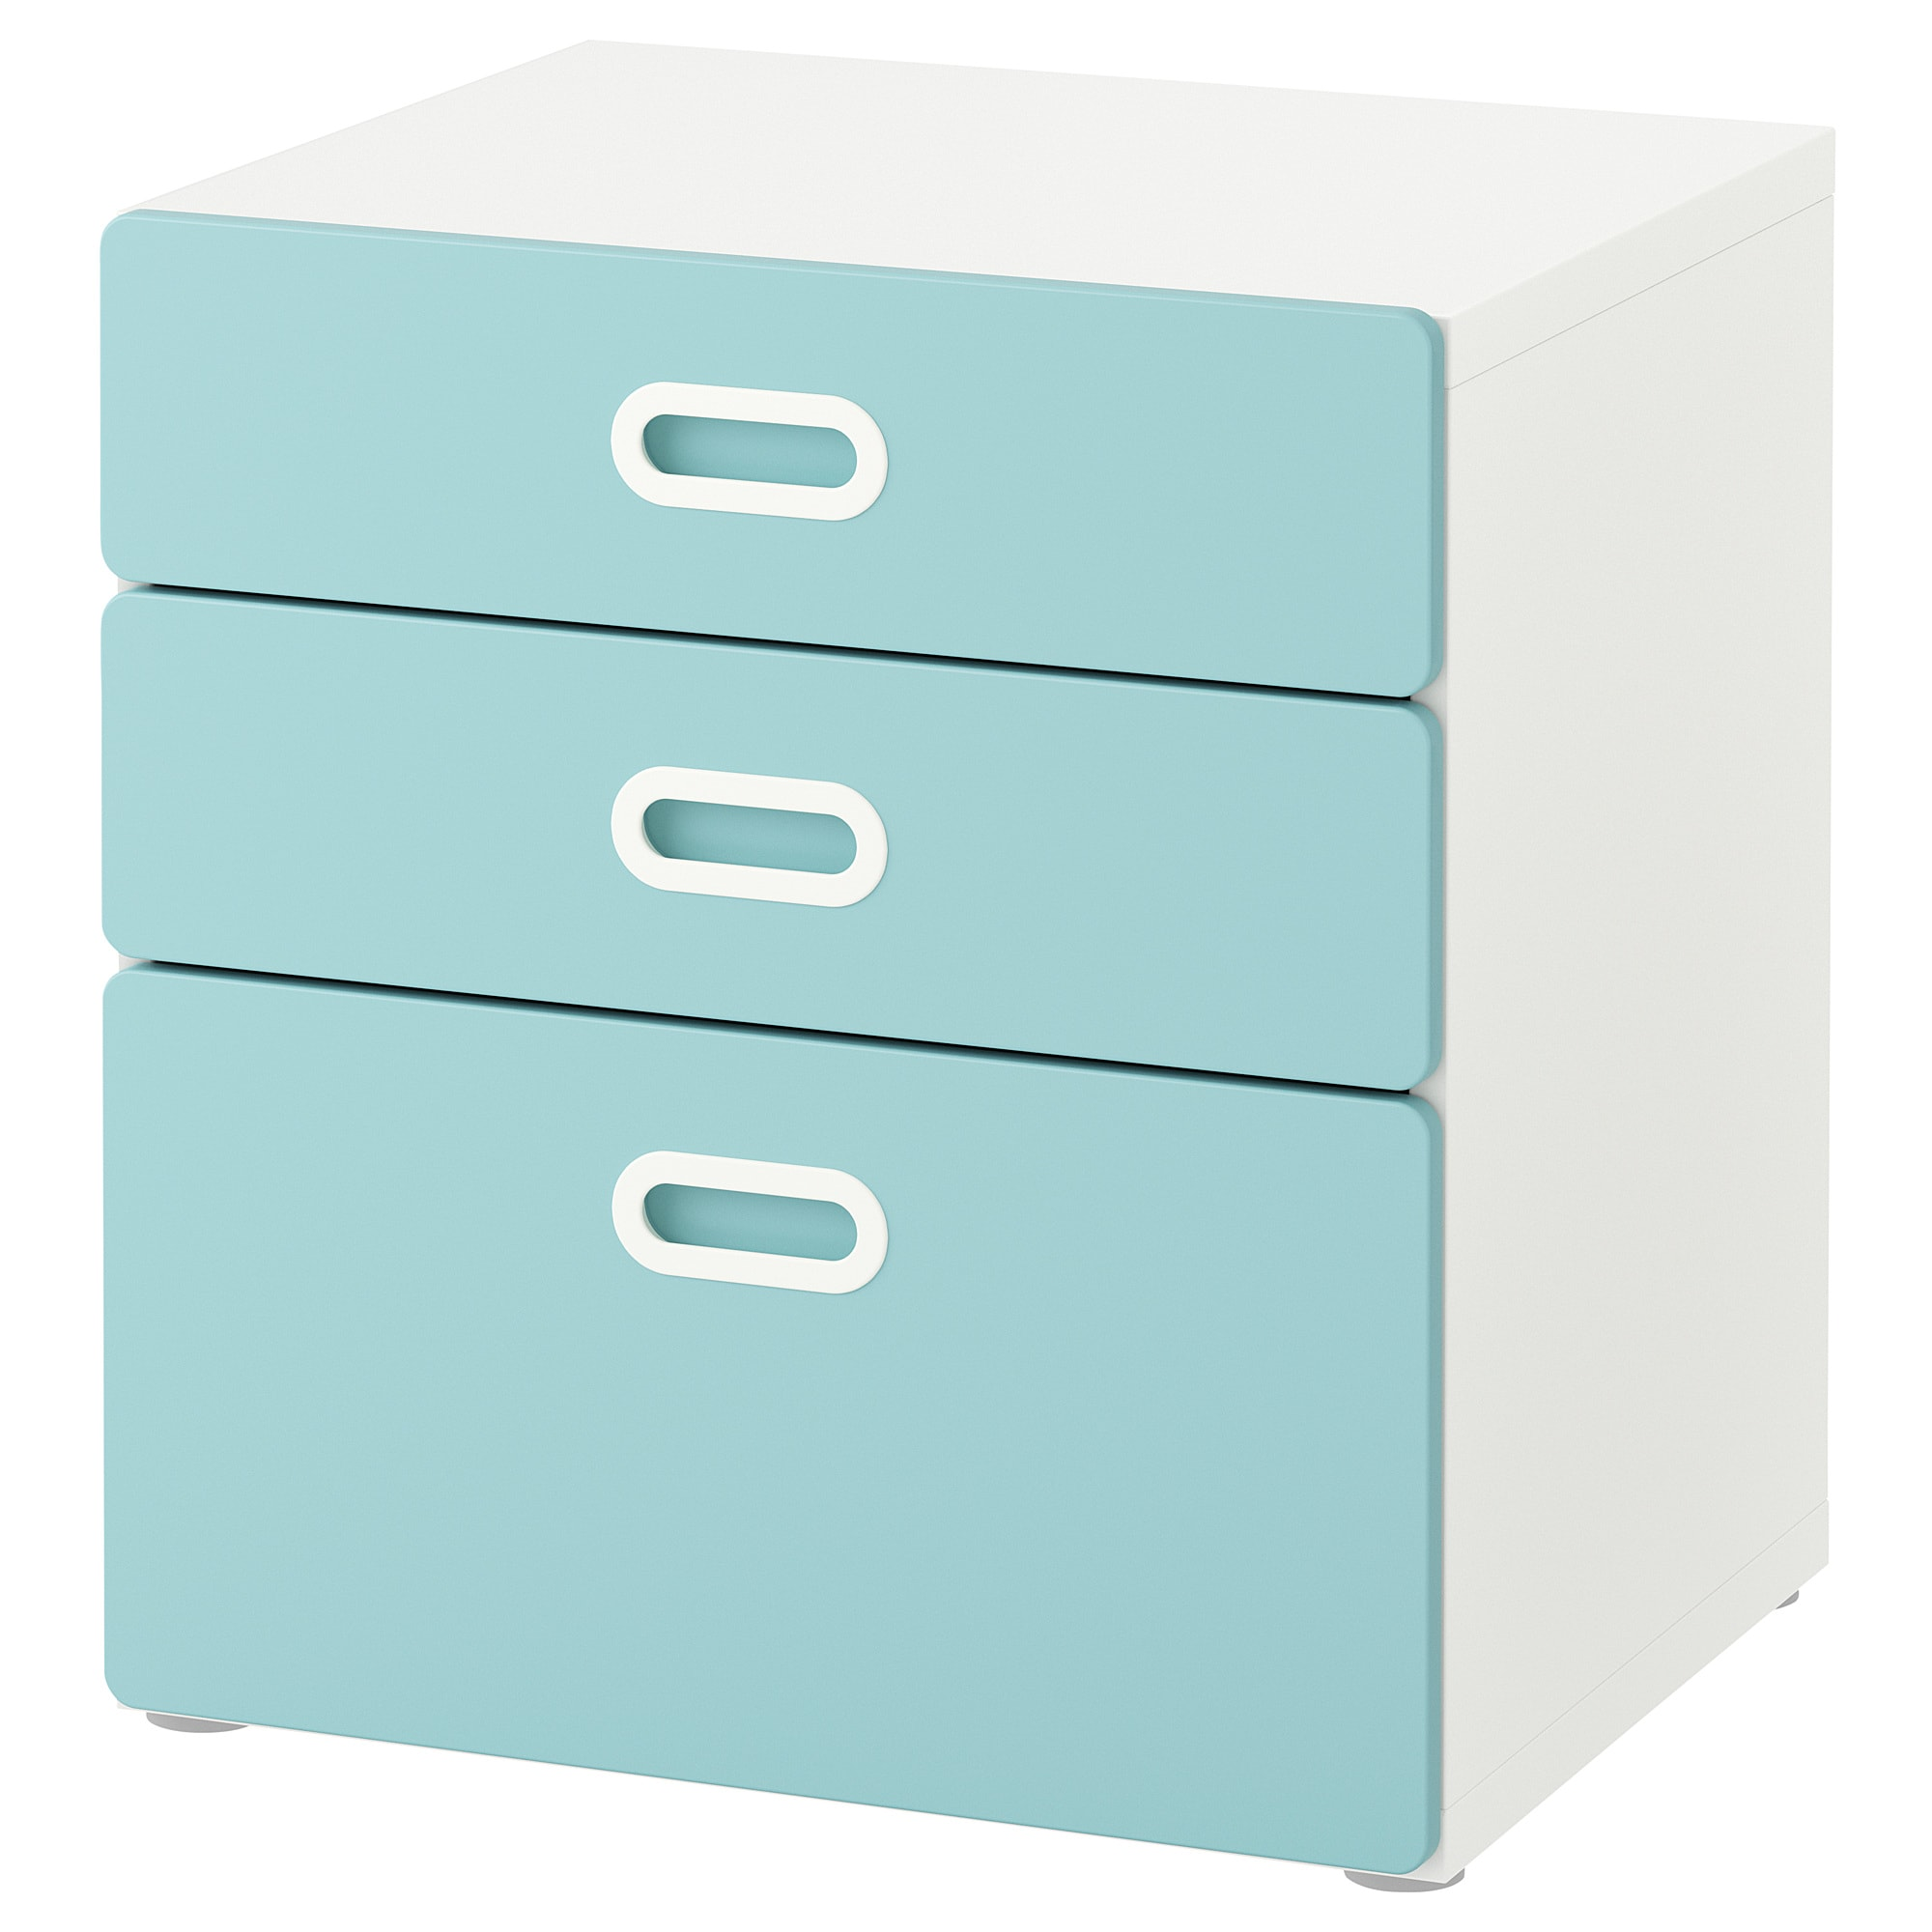 detailing 1c628 542f9 Chest of 3 drawers STUVA / FRITIDS white, light blue